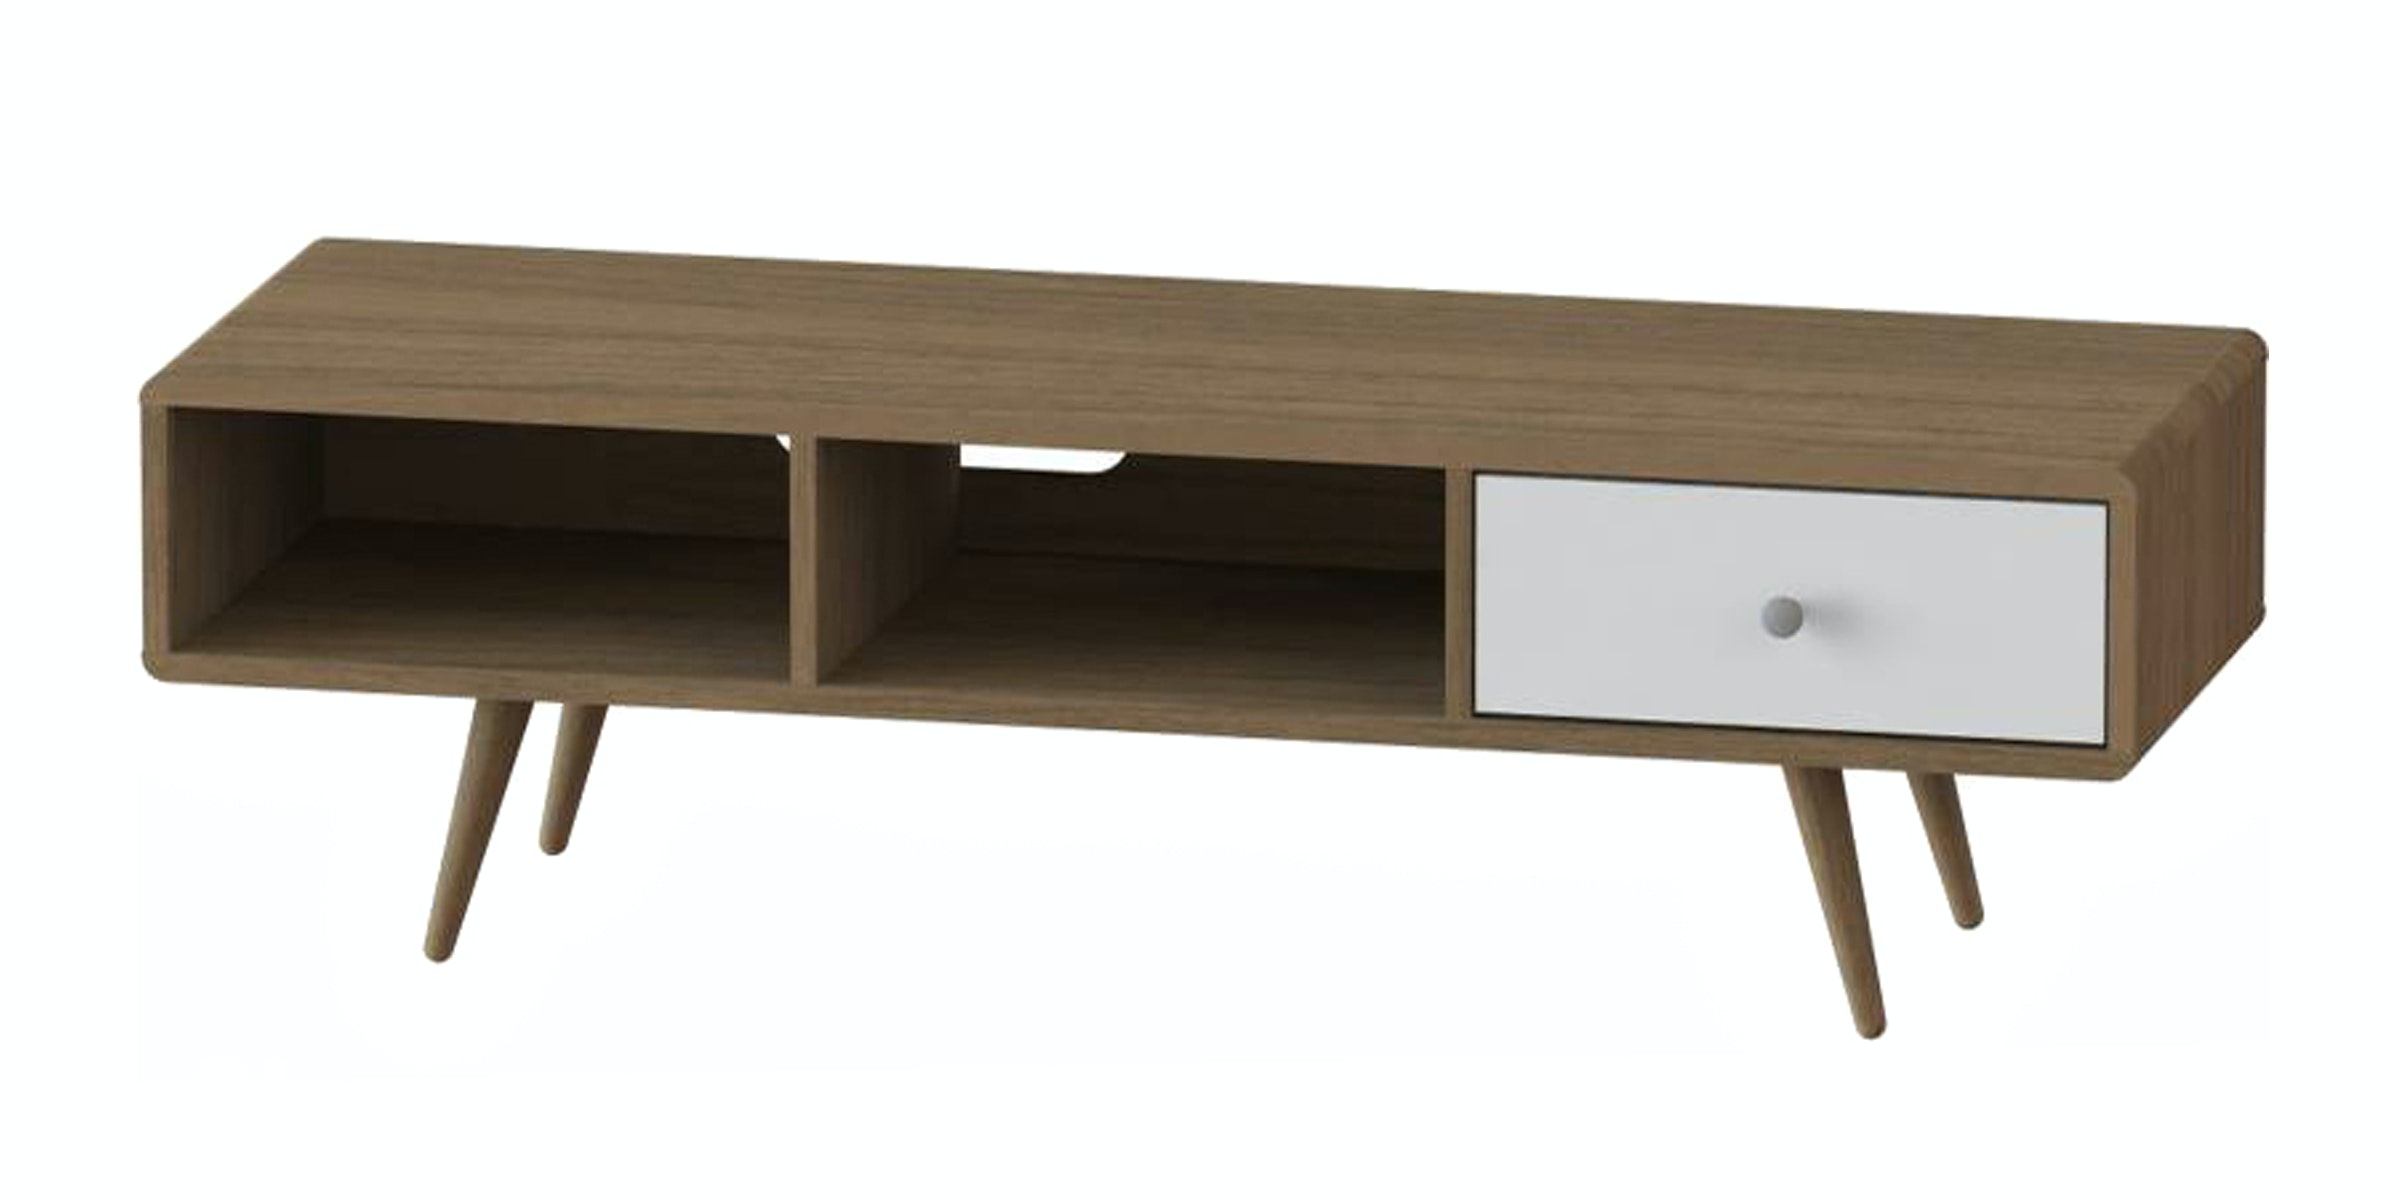 JYSK Tv Bench Benedikte 140Cm 1 Drawer Walnut/White